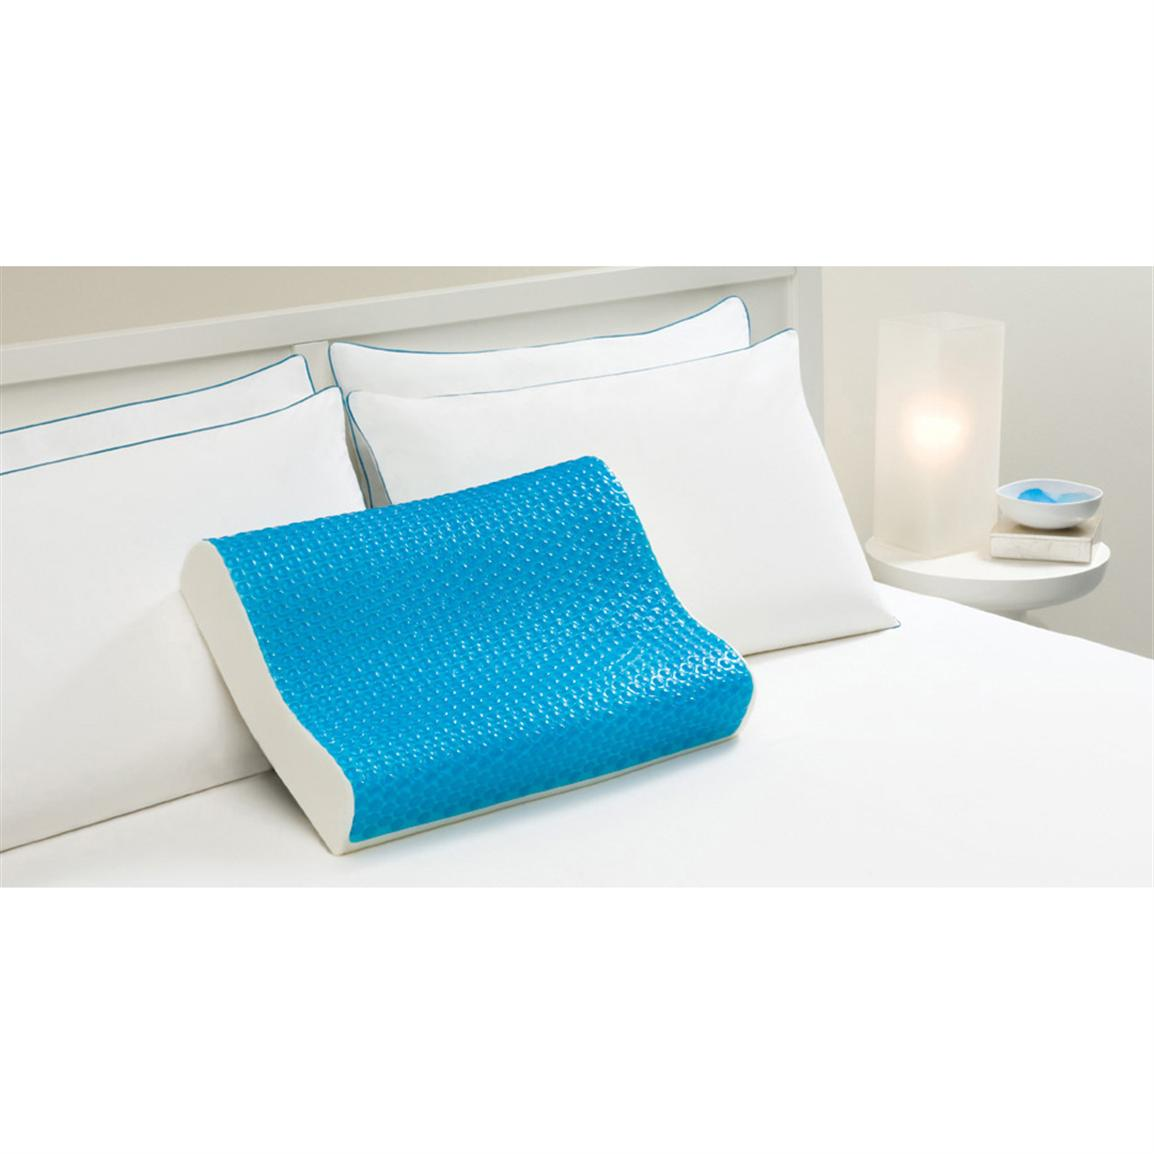 Hydraluxe Memory Foam Hydraluxe Gel Contour Pillow